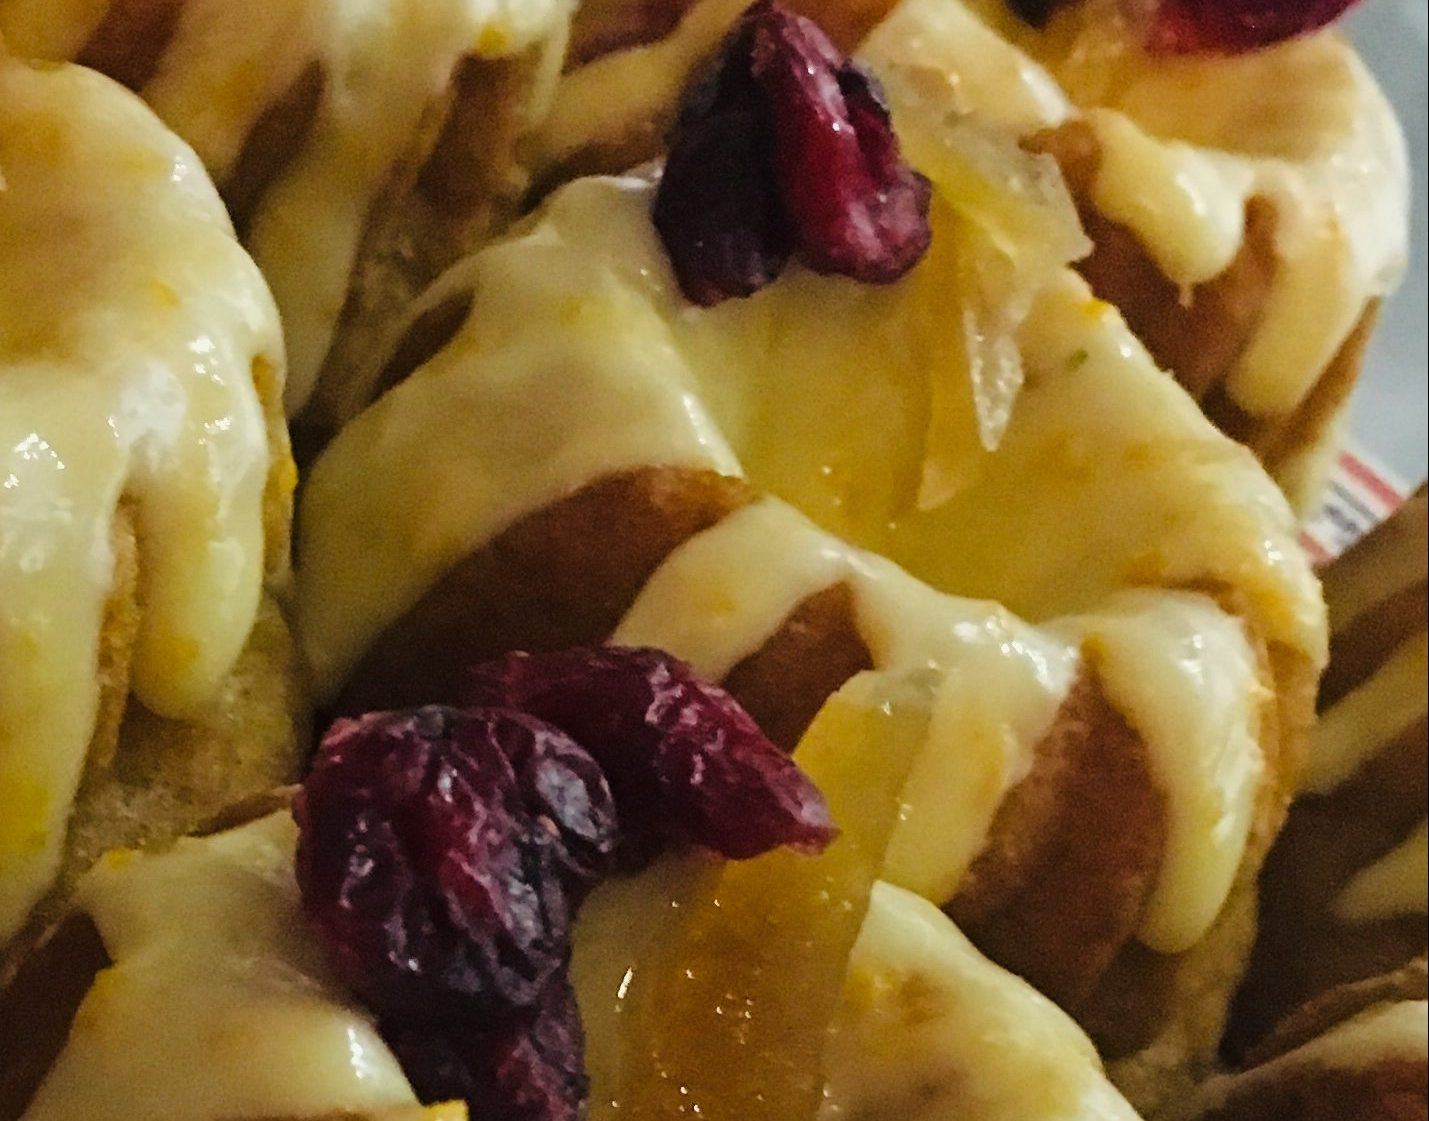 The Cranberry and Orange Bundt from Bakehouse in the Barn and Hunters of Helmsley